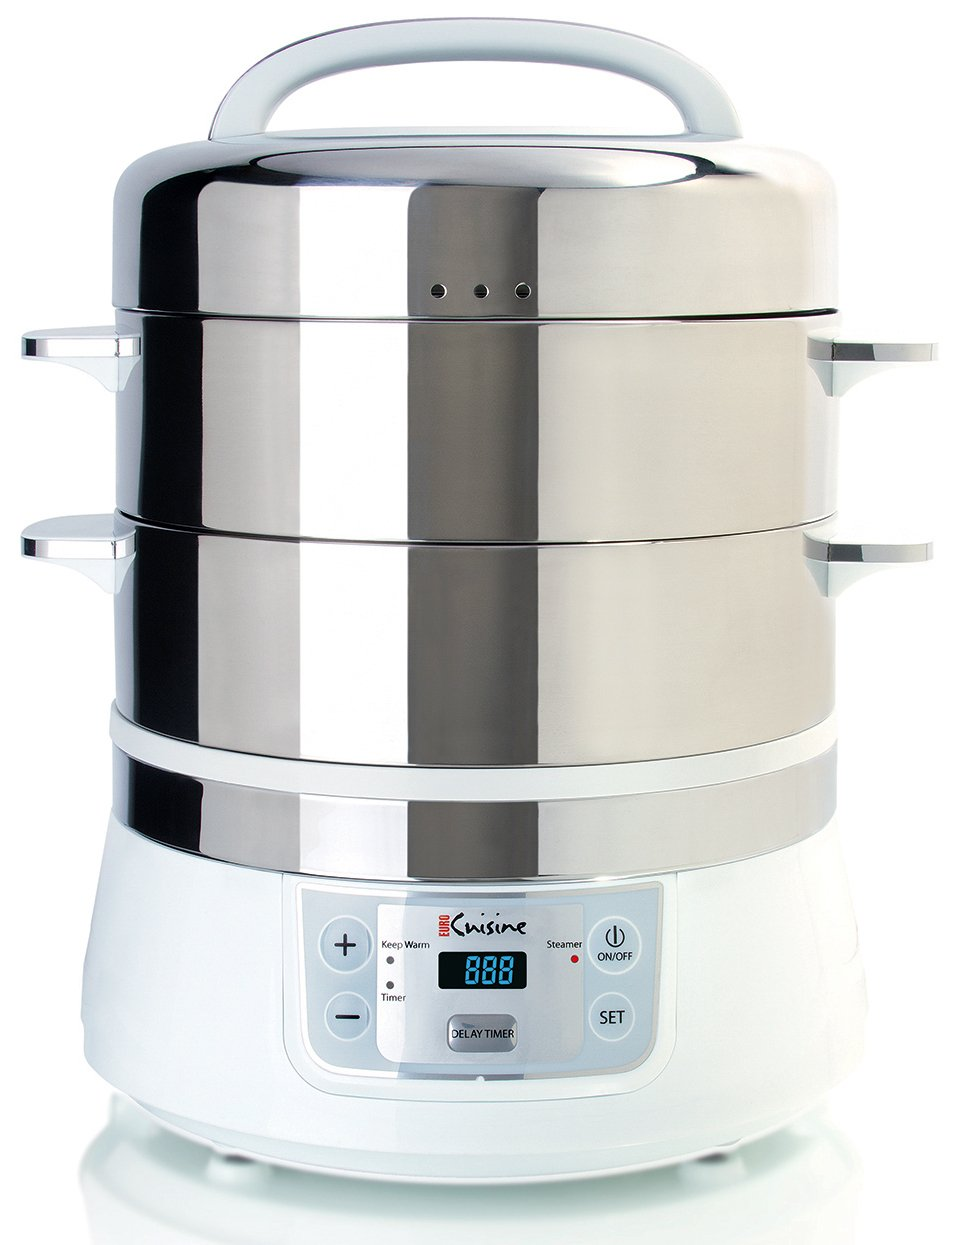 Euro Cuisine FS2500 Electric Food Steamer, White/Stainless Steel by Euro Cuisine